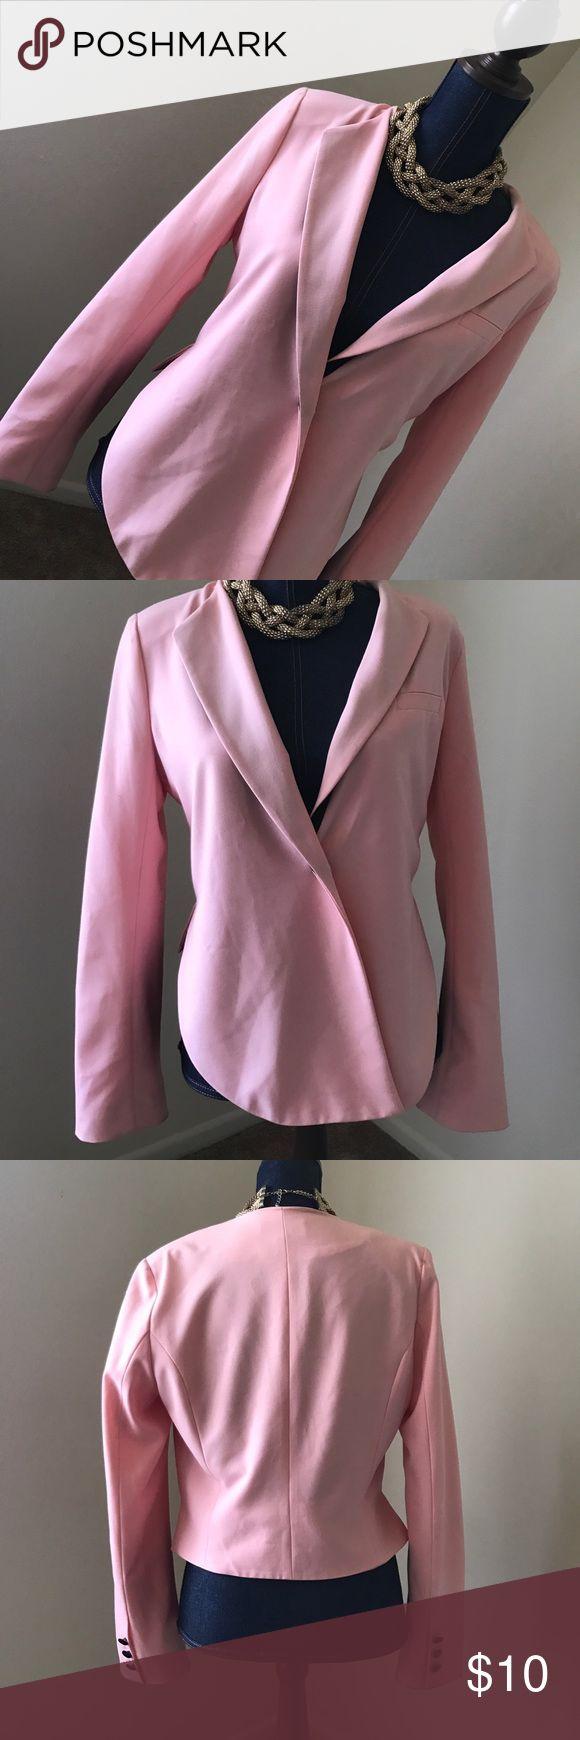 Light pink blazer Adorable pink blazer with black accents. ***slight stains as shown in photos**** price reflects the staining jaye.e Jackets & Coats Blazers